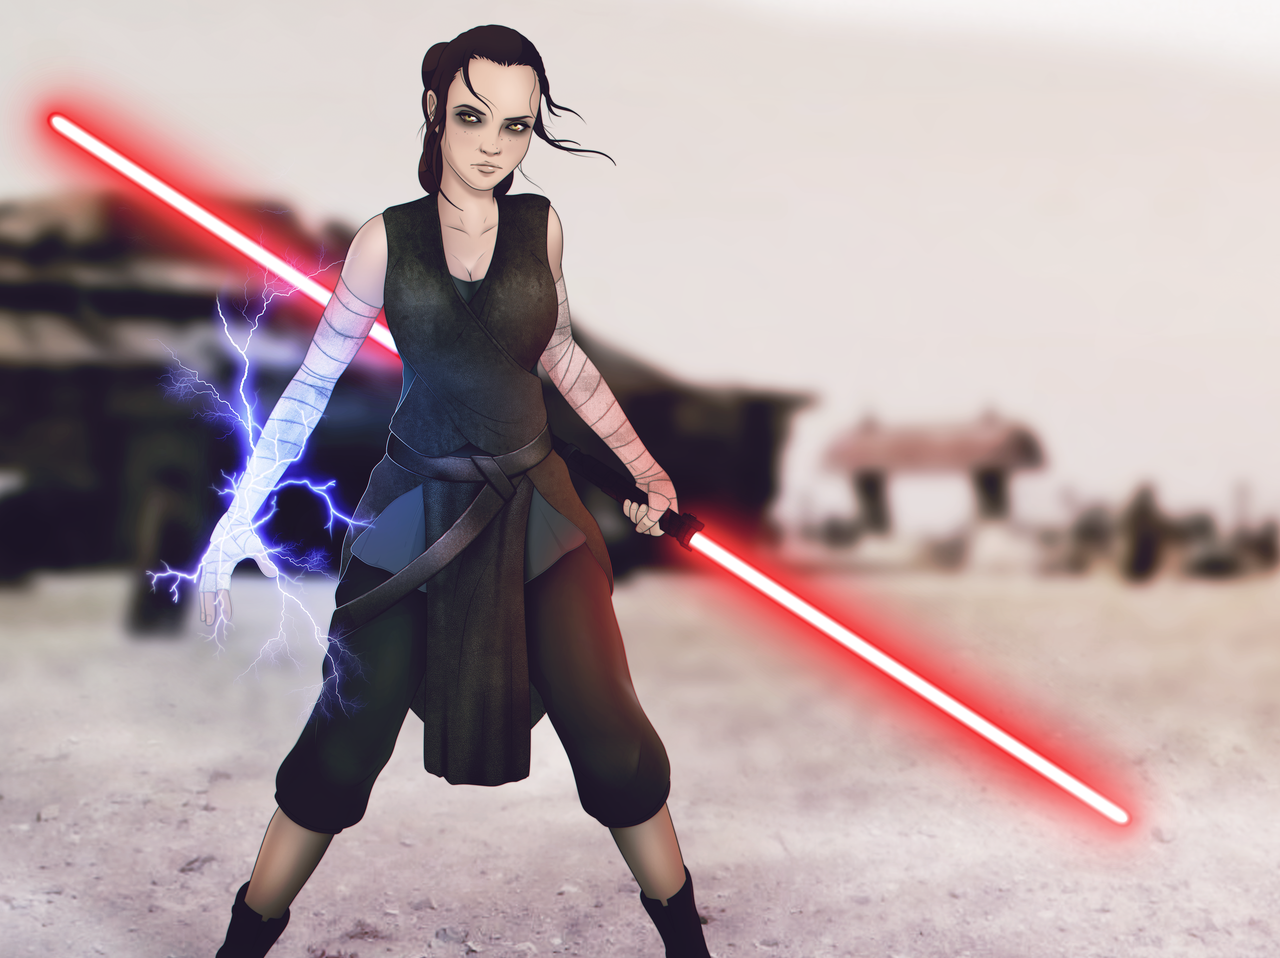 Rey sith   Star Wars by StanEKB 1280x958